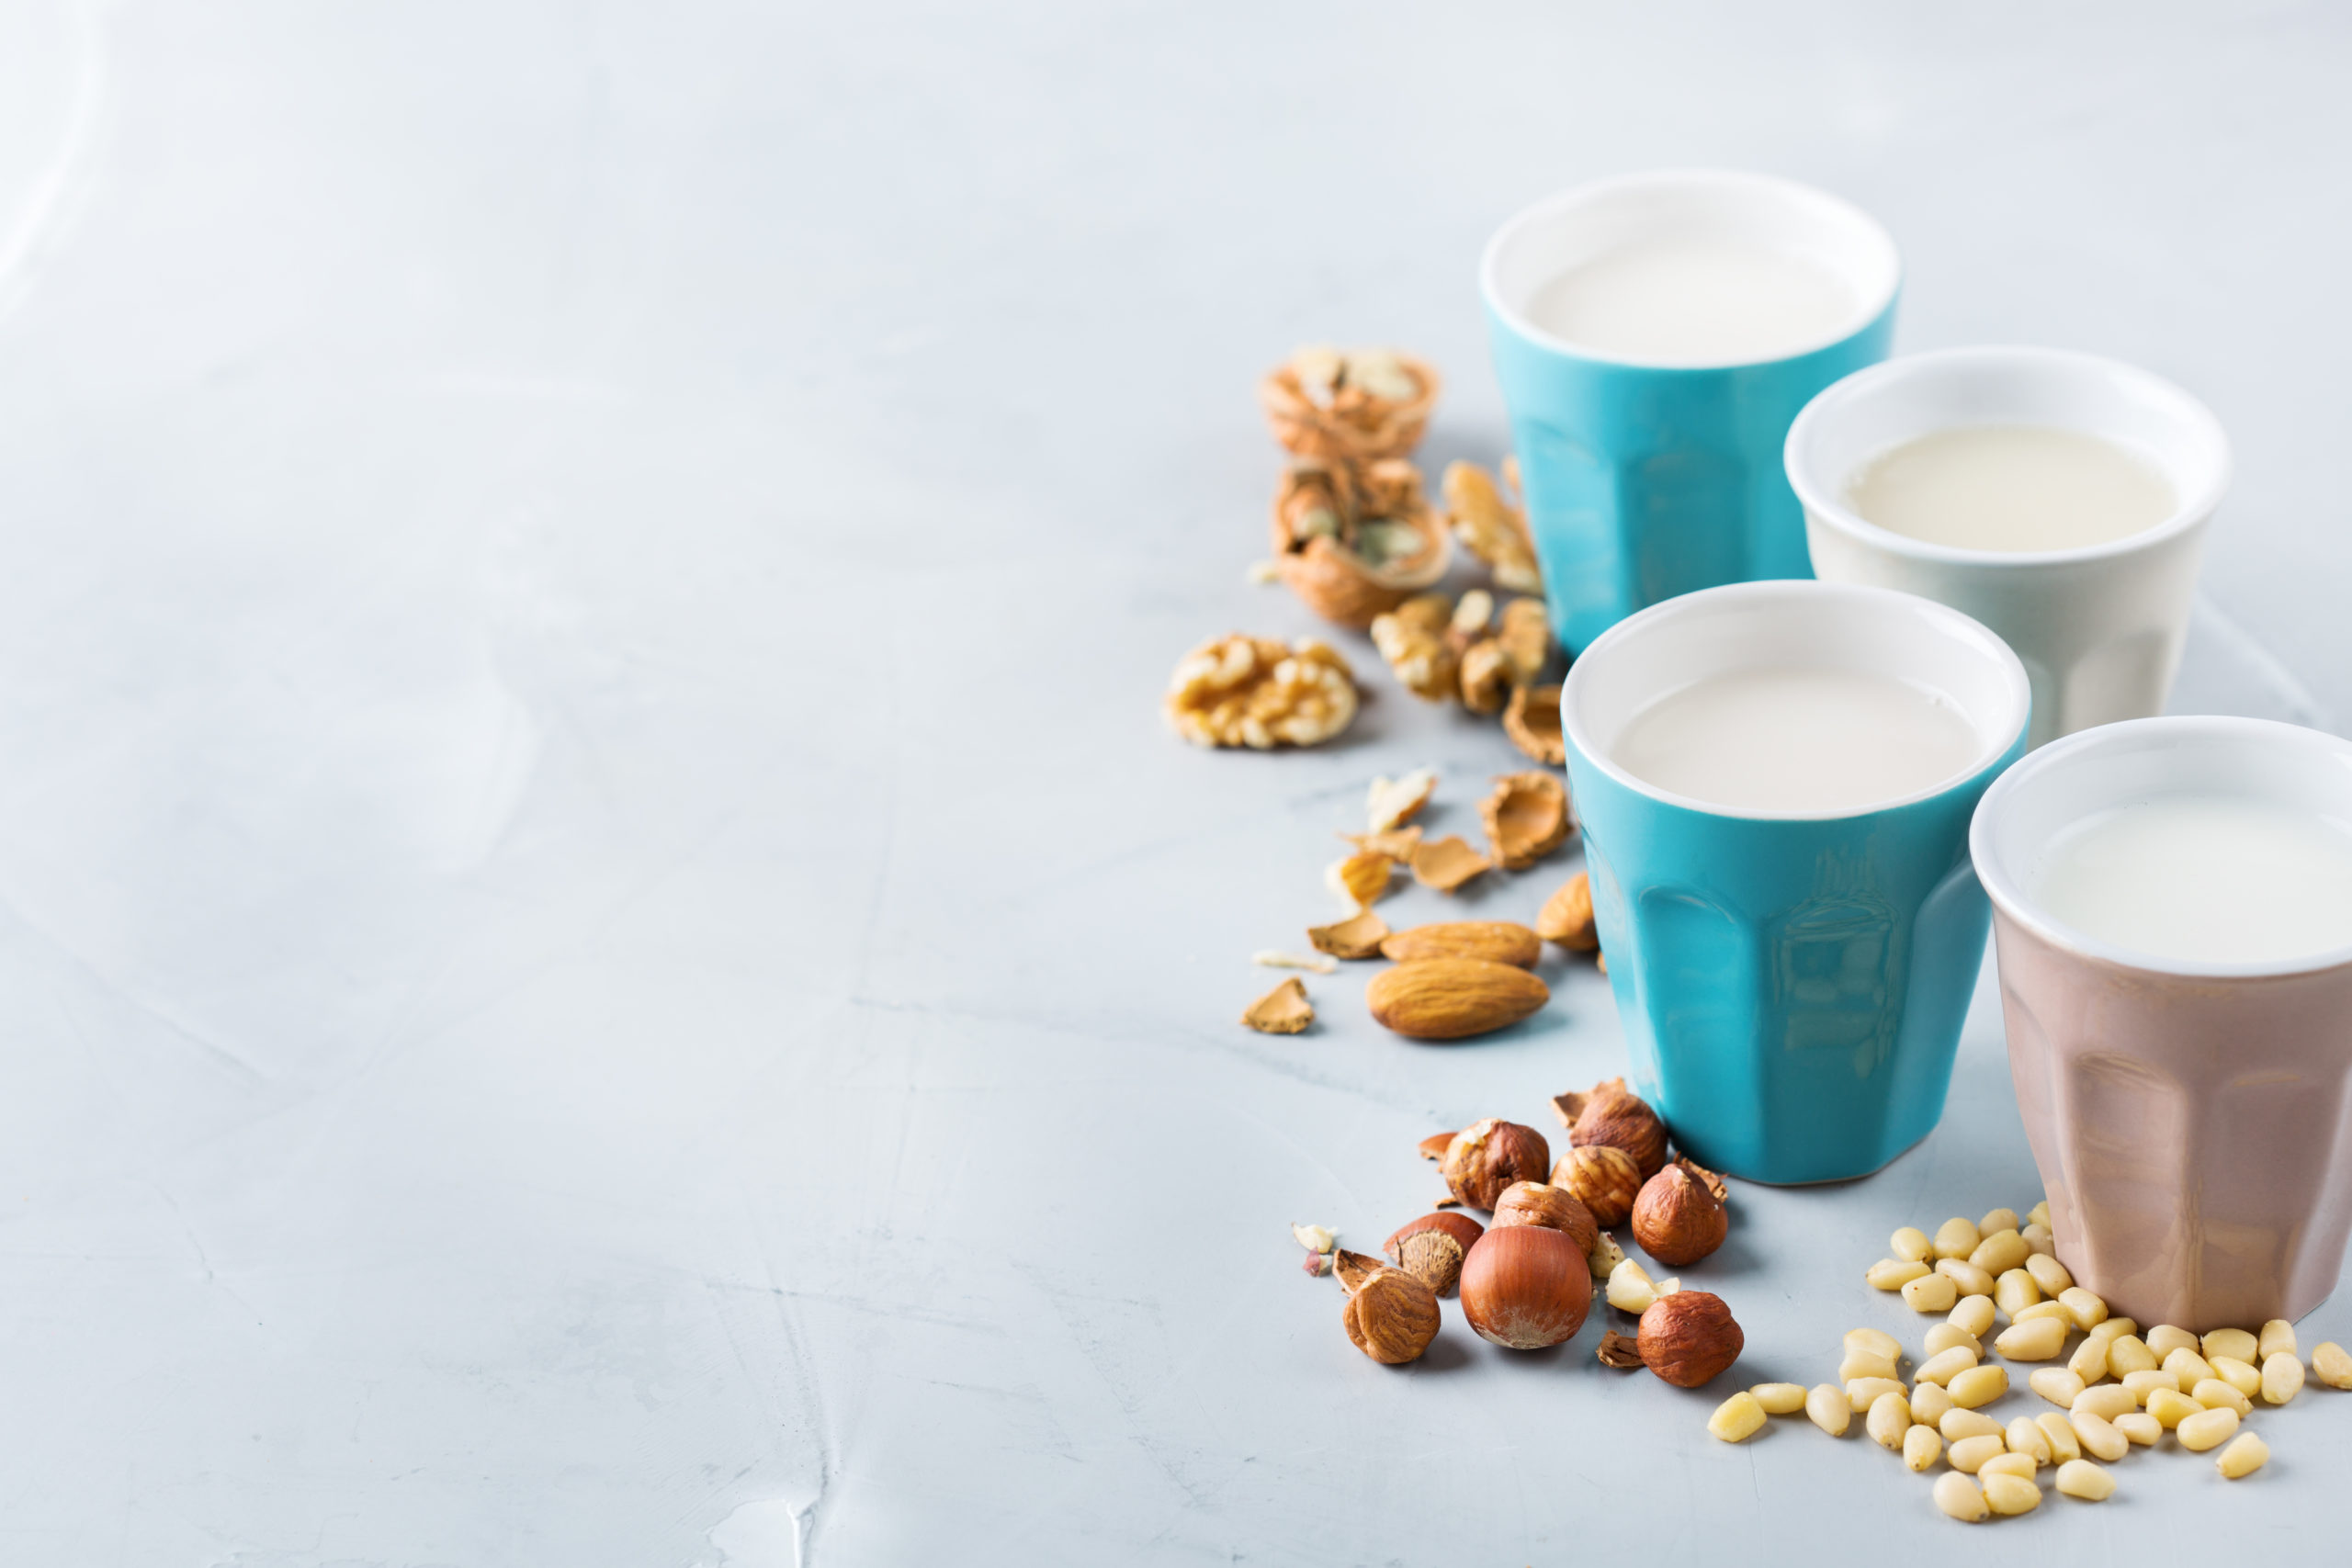 Food and drink, health care, diet and nutrition concept. Assortment of organic vegan non diary milk from nuts in glasses on a kitchen table. Copy space background